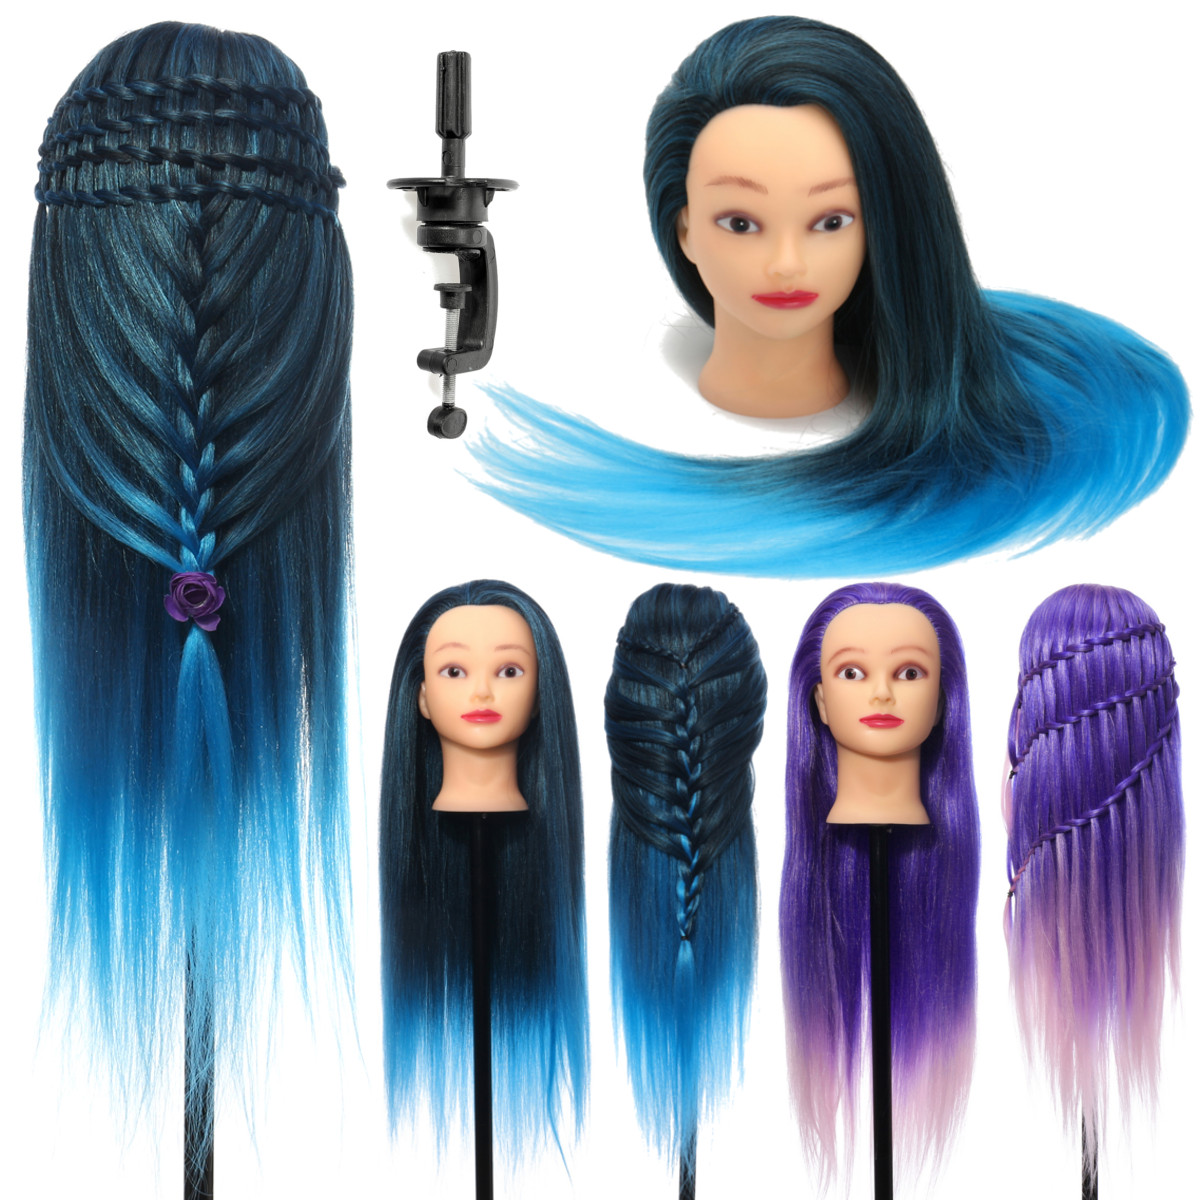 26 Hairdressing Training Head Model Colorful High Temperature Fiber Long Hair With Clamp Salon Practice Doll Mannequin Head26 Hairdressing Training Head Model Colorful High Temperature Fiber Long Hair With Clamp Salon Practice Doll Mannequin Head